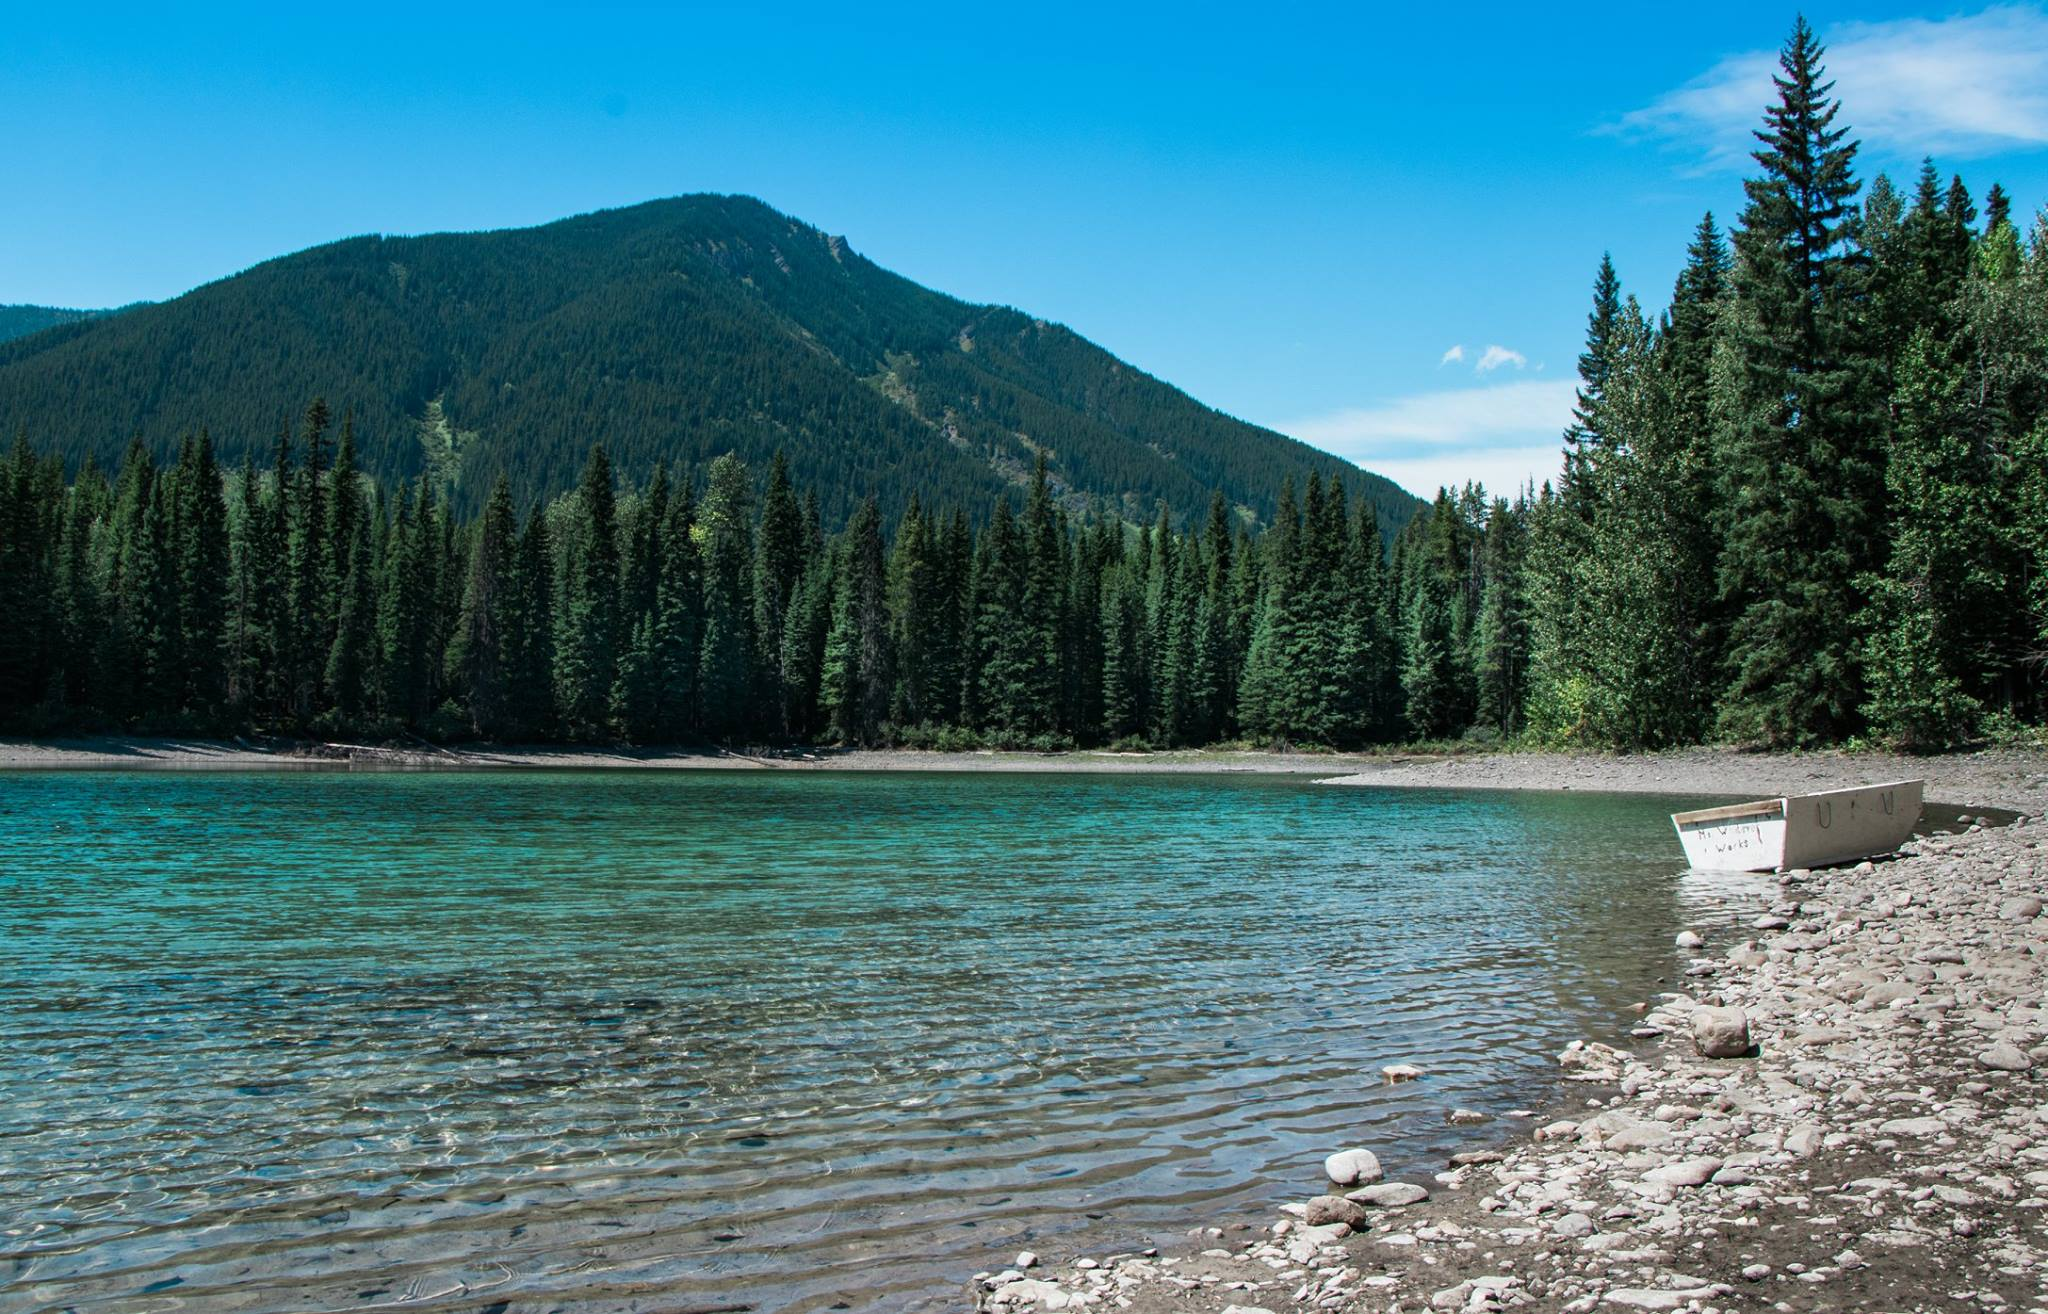 Elkford residents voicing concerns over Bingay mine proposal